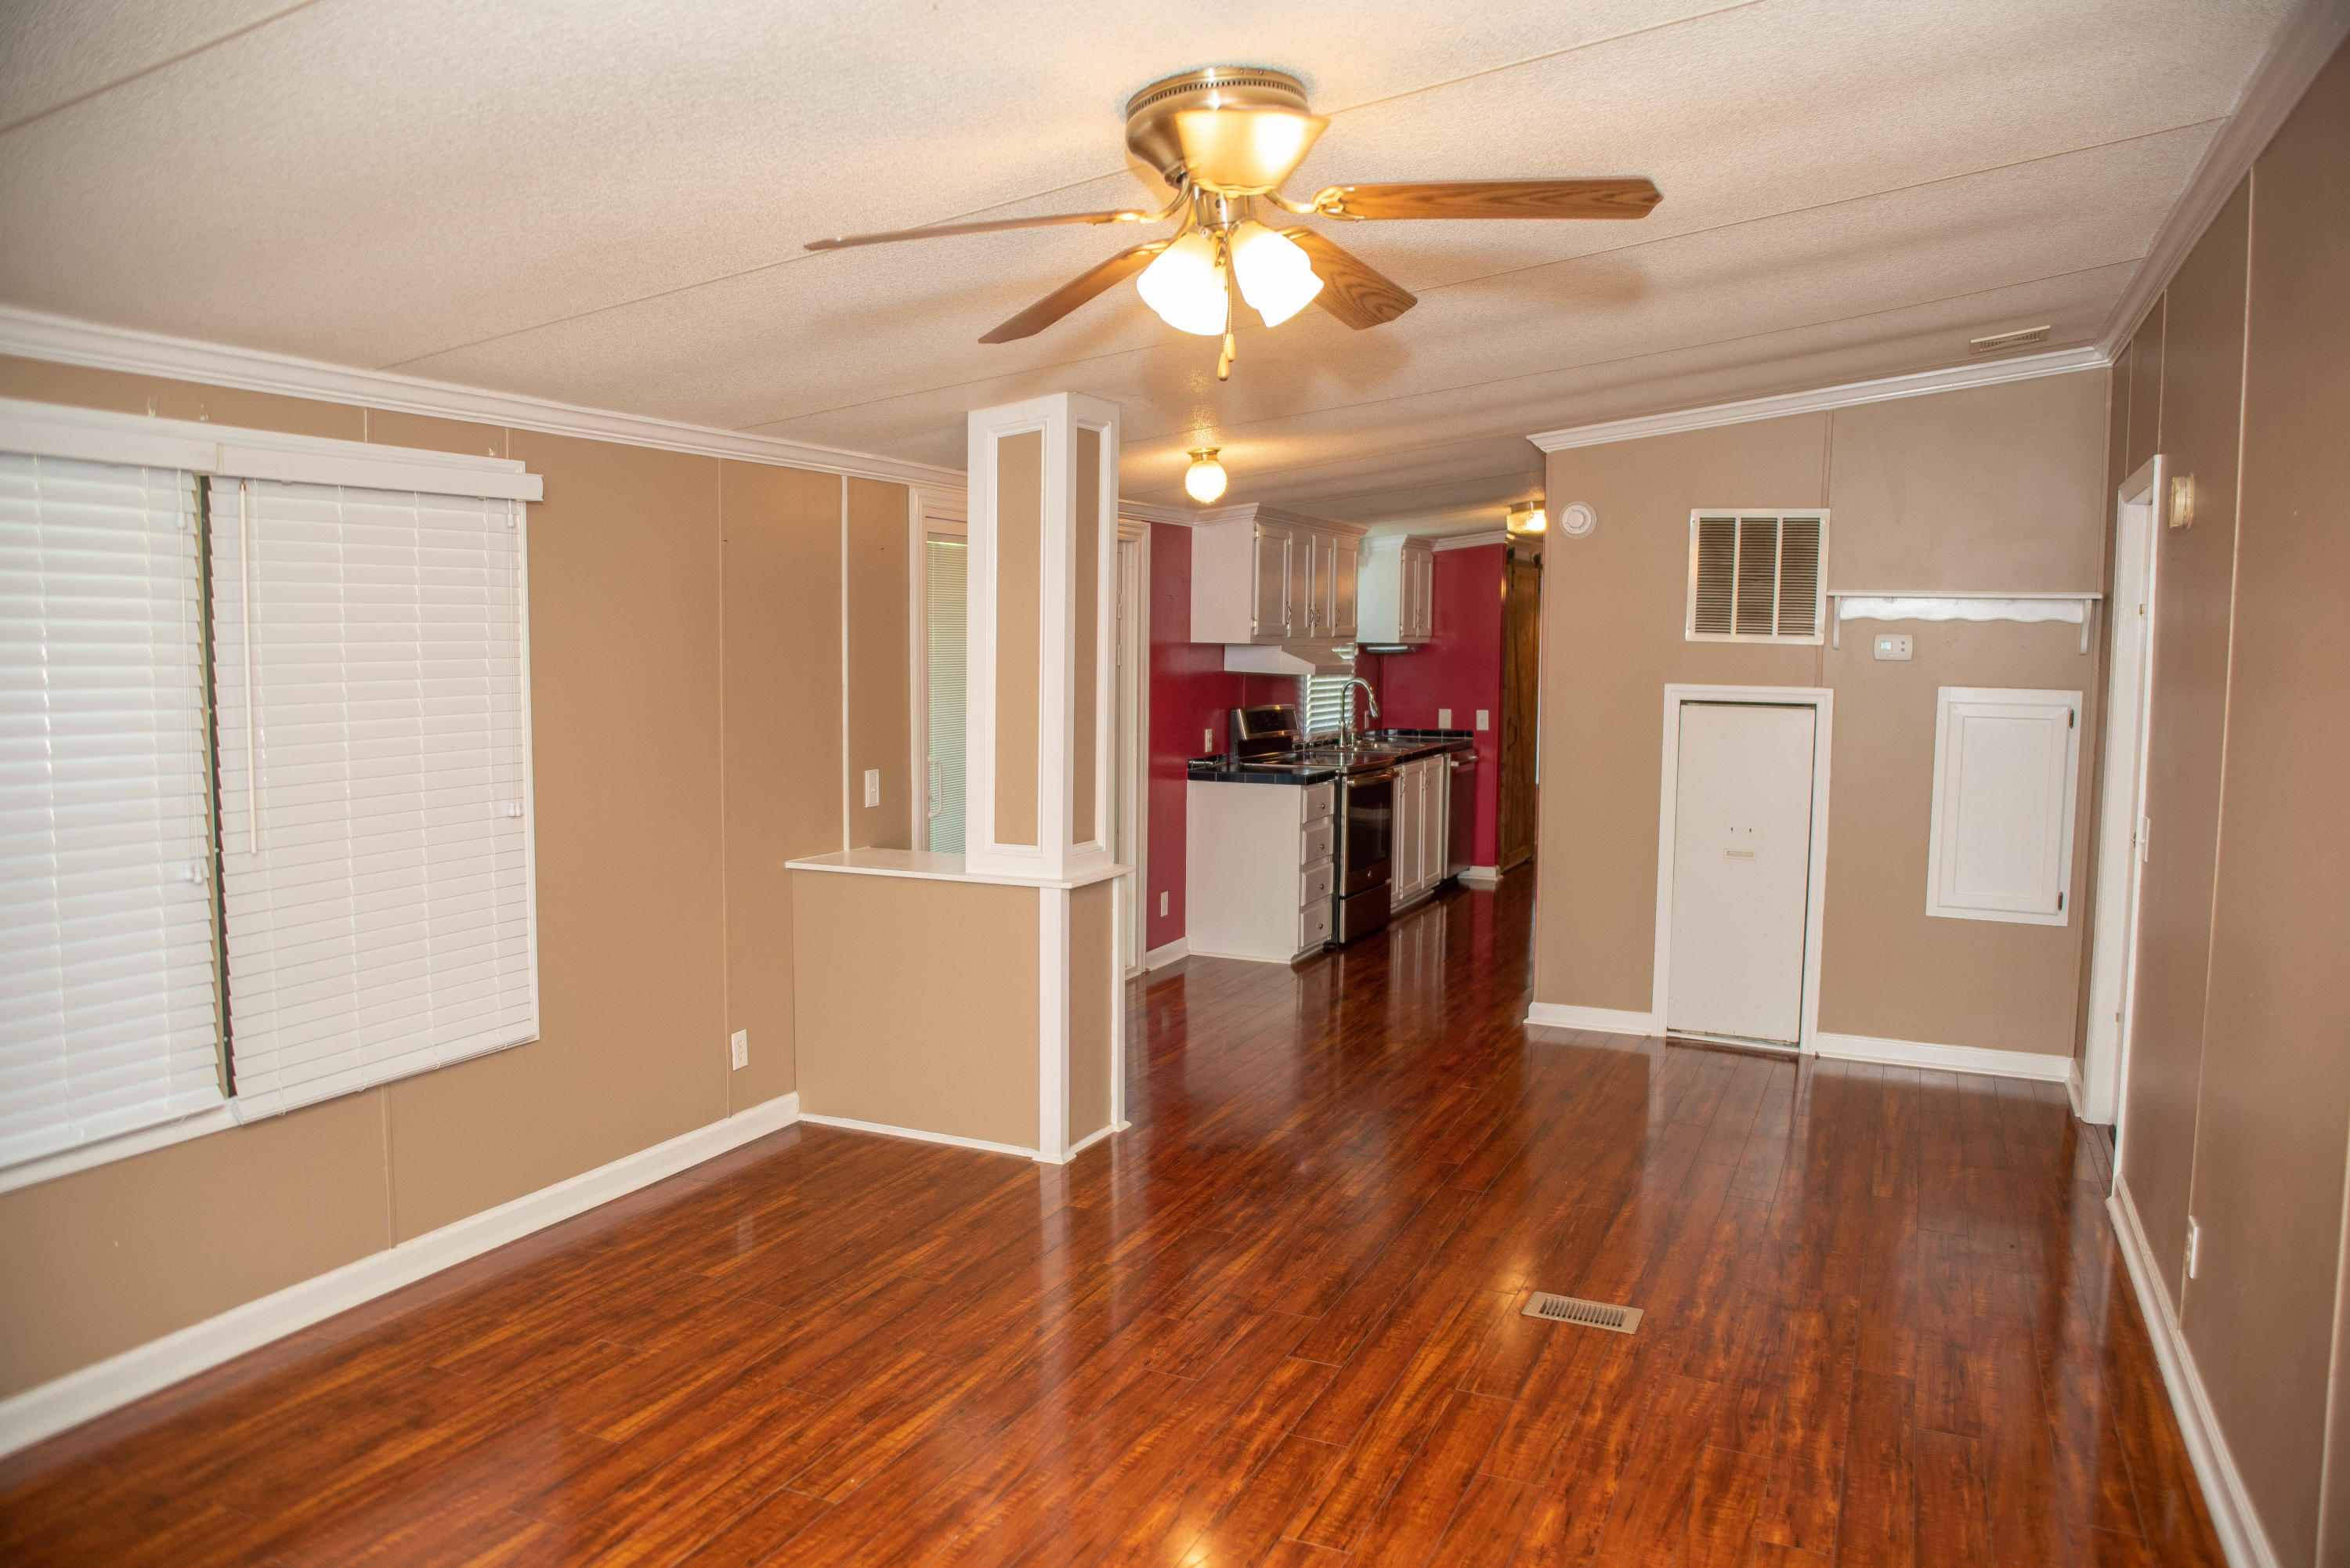 Twin Lakes Homes For Sale - 331 Twin Lakes, Summerville, SC - 50